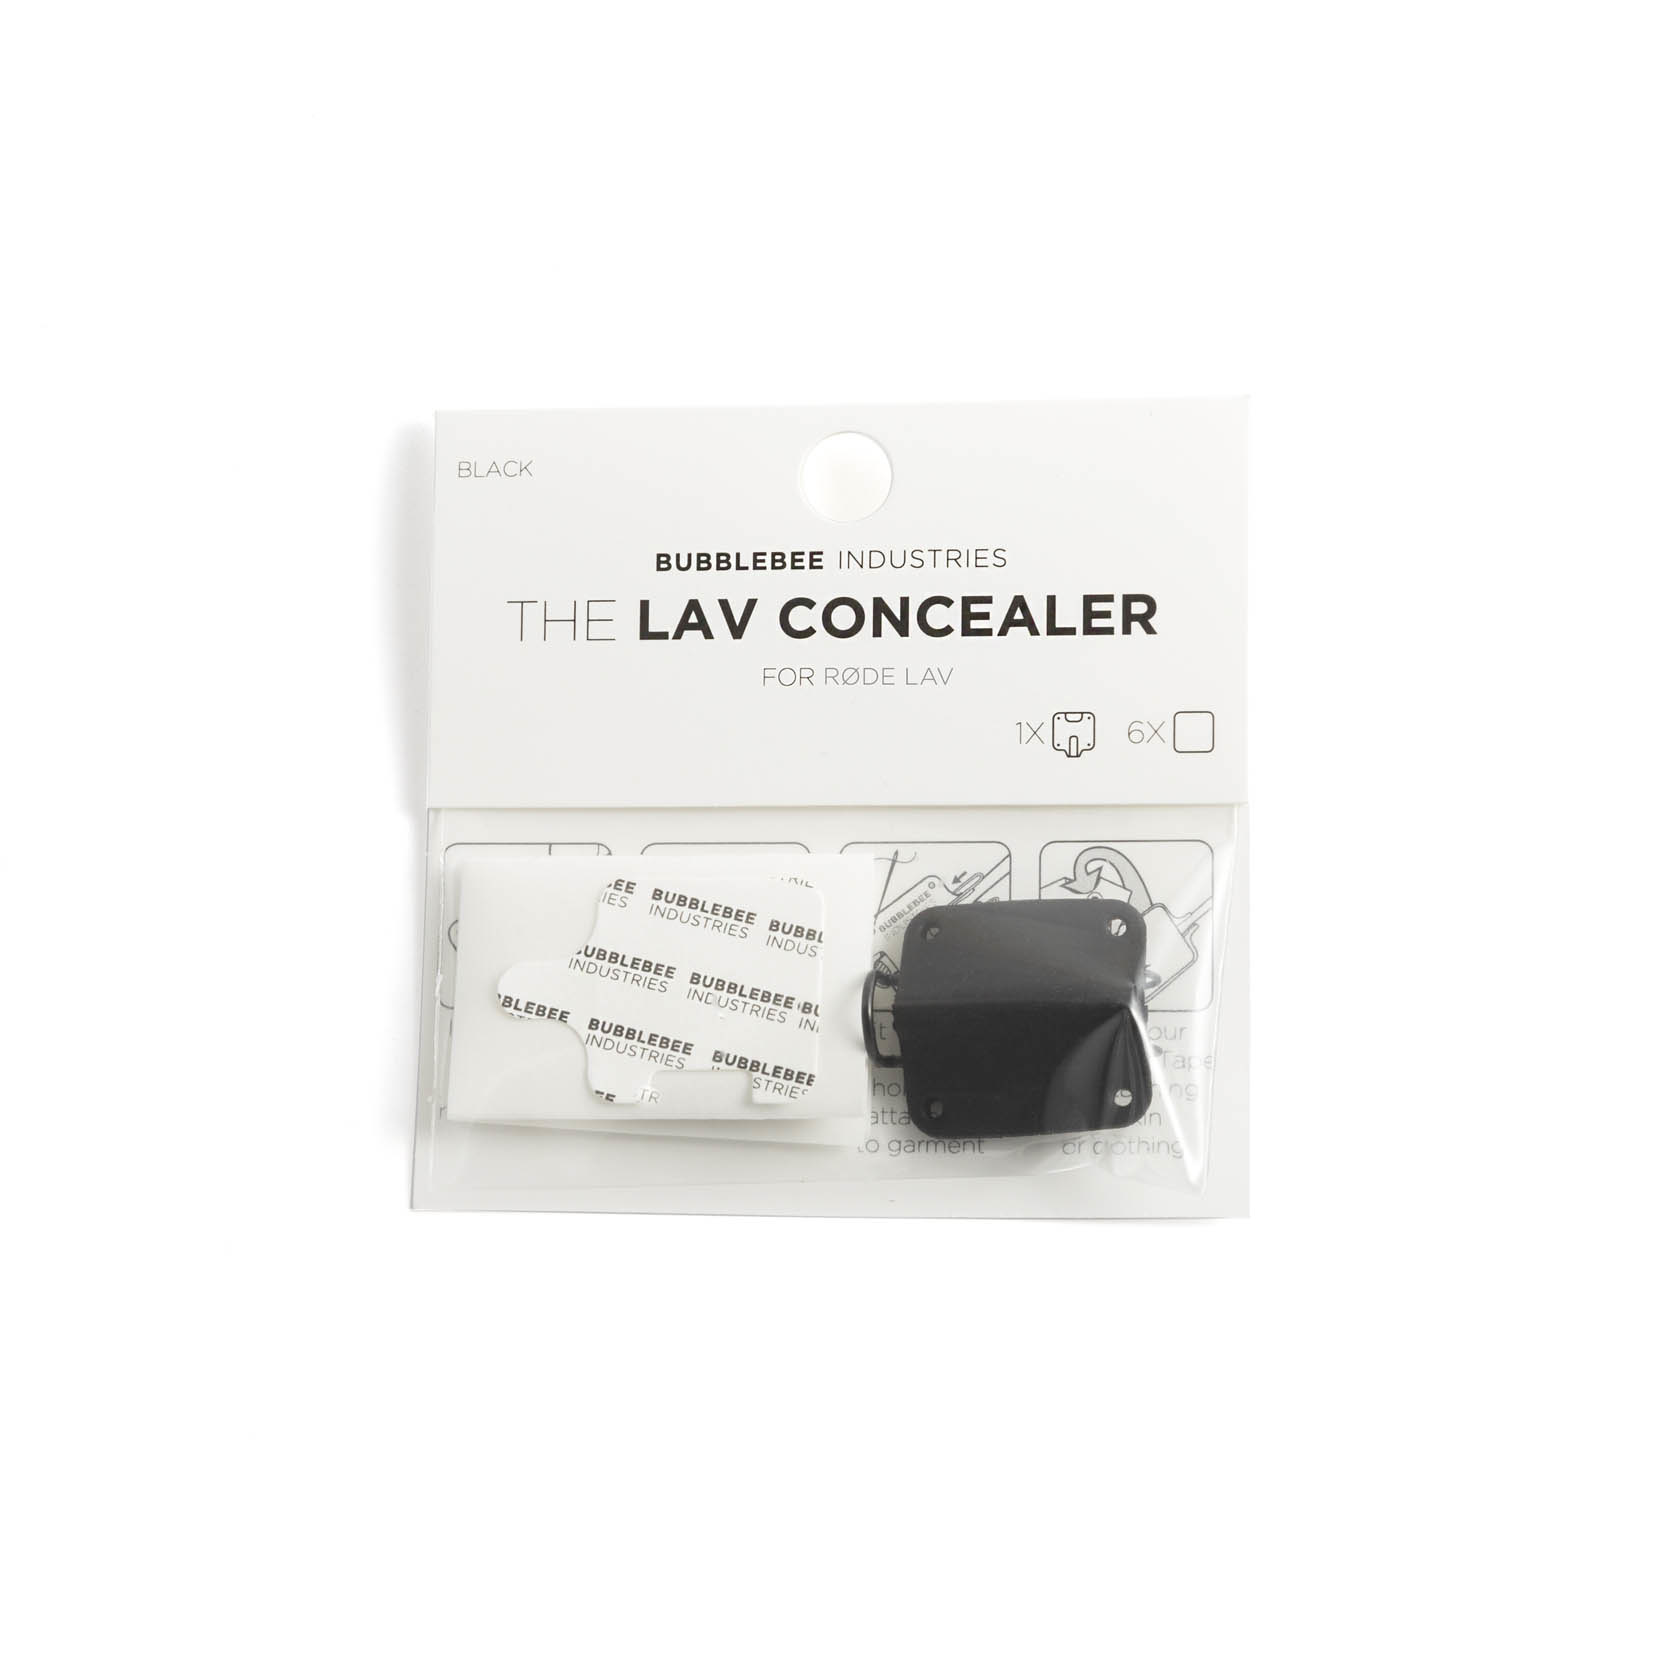 Bubblebee Industries Bubblebee Industries - The Lav Concealer für RØDE LAV